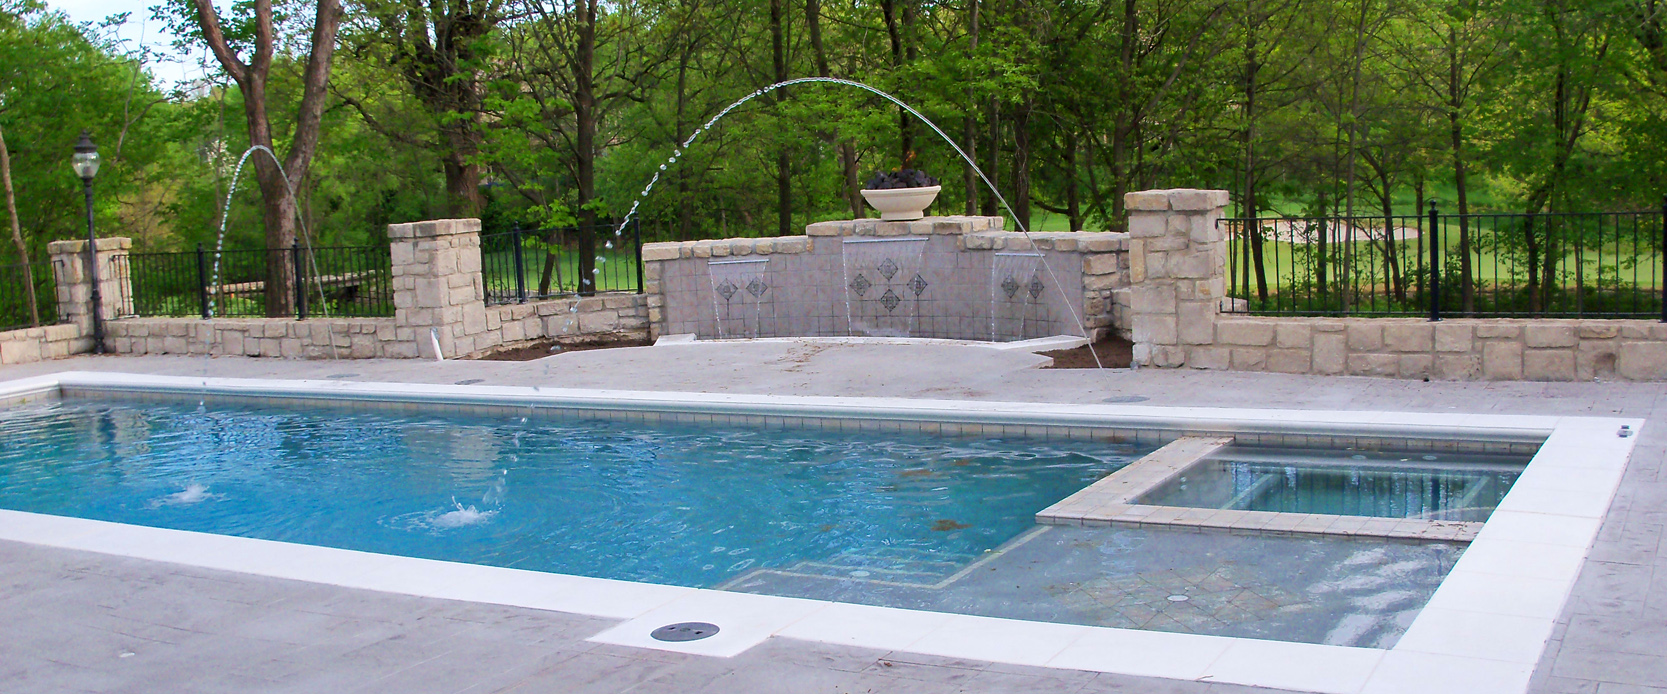 pool-renovation-slider-2